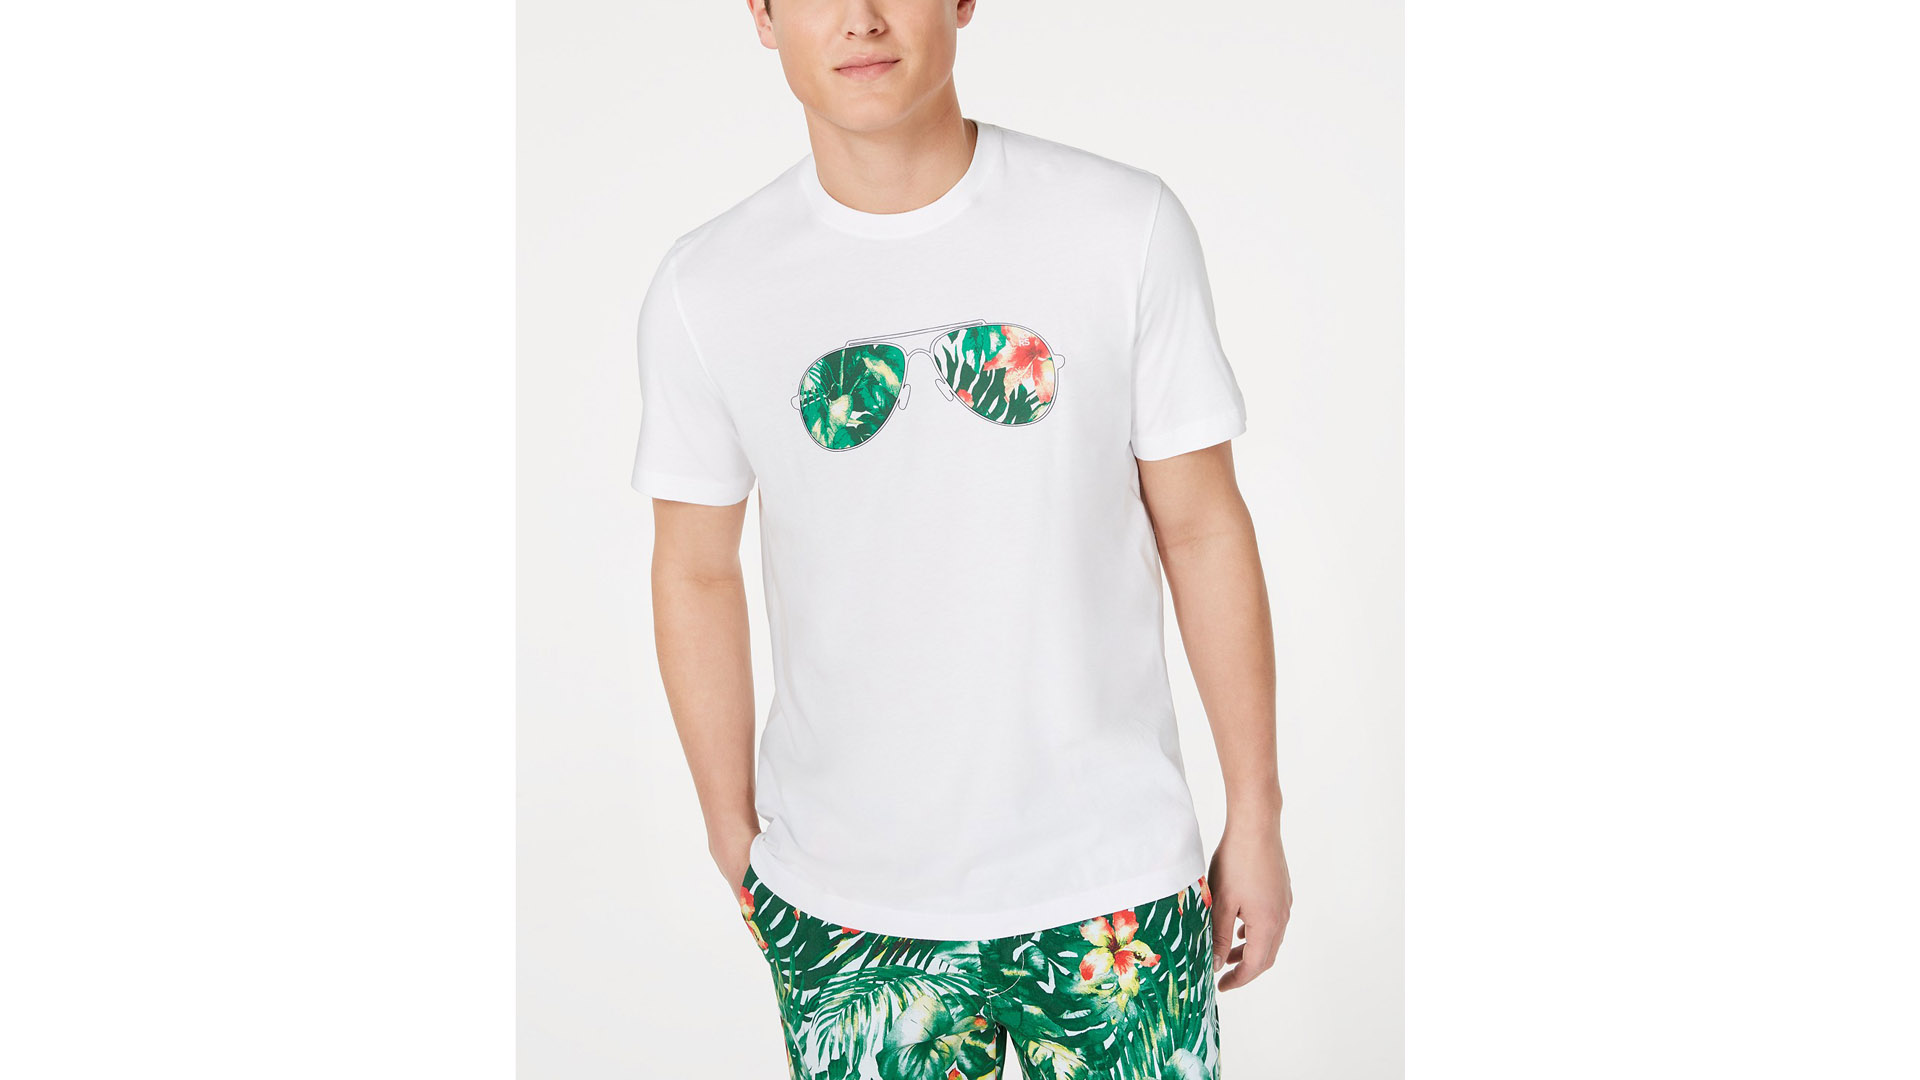 Purchase Tropical Aviator - One Of 10 Awesome T-Shirts Through Lemoney